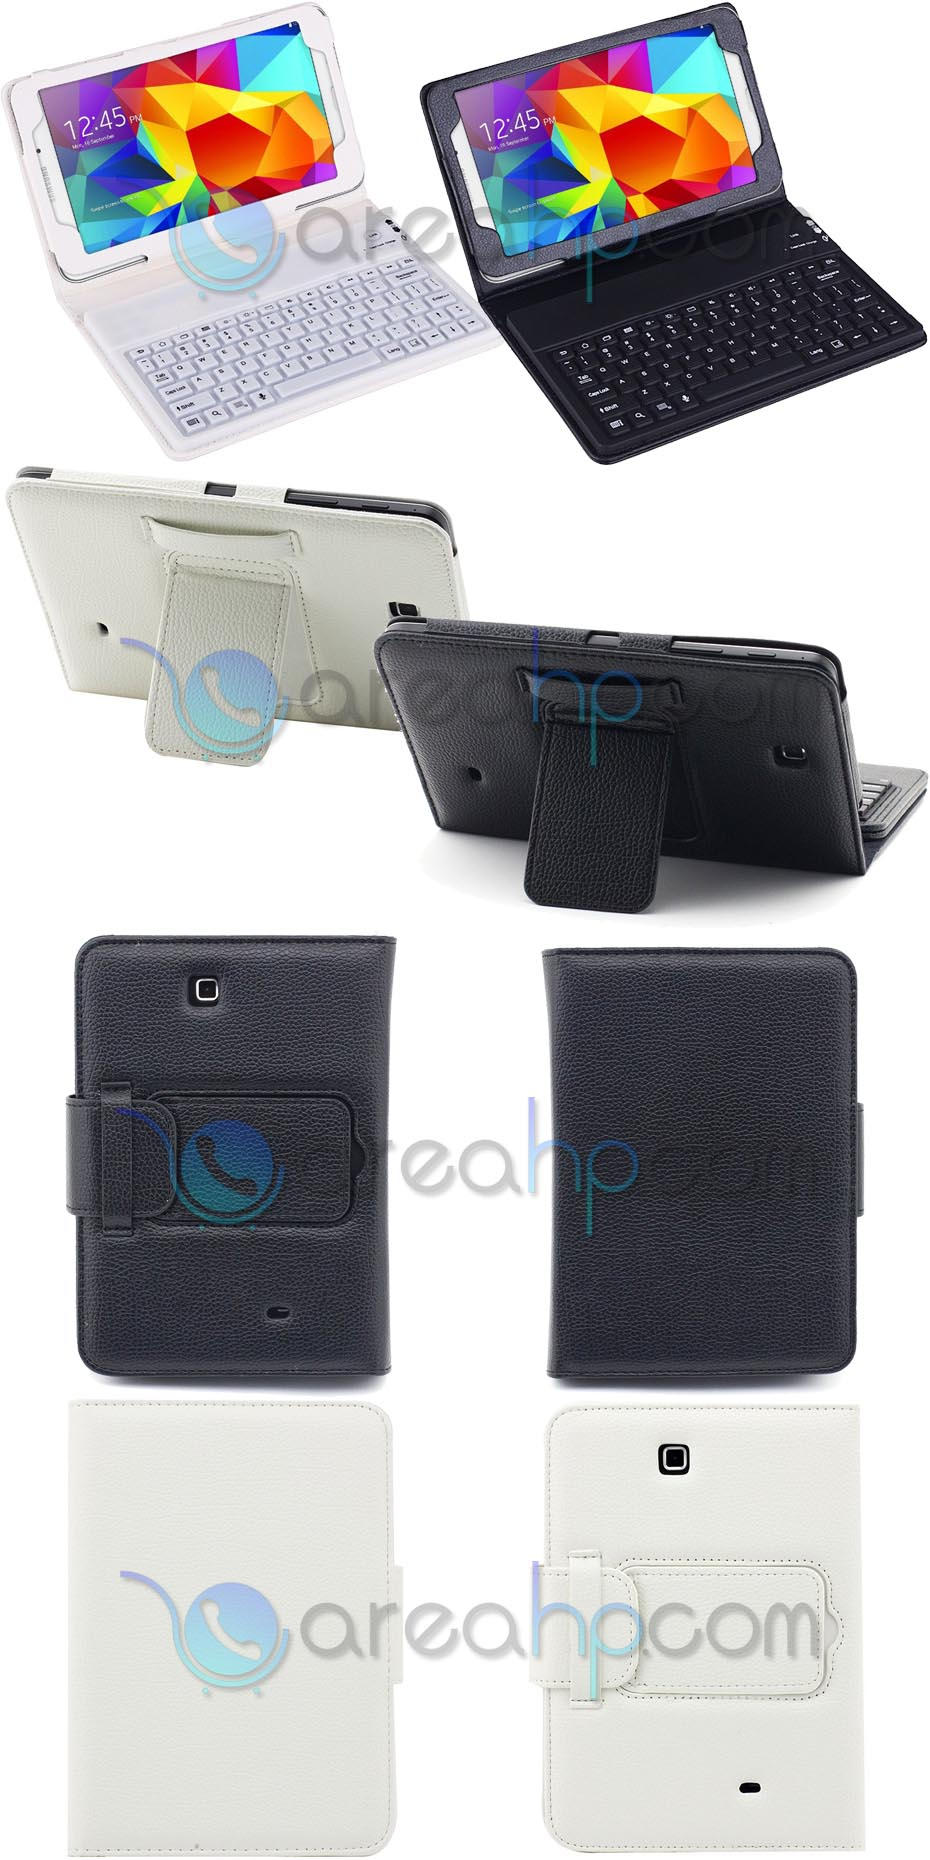 Keyboard Case for Samsung Galaxy Tab4 7.0 Overview